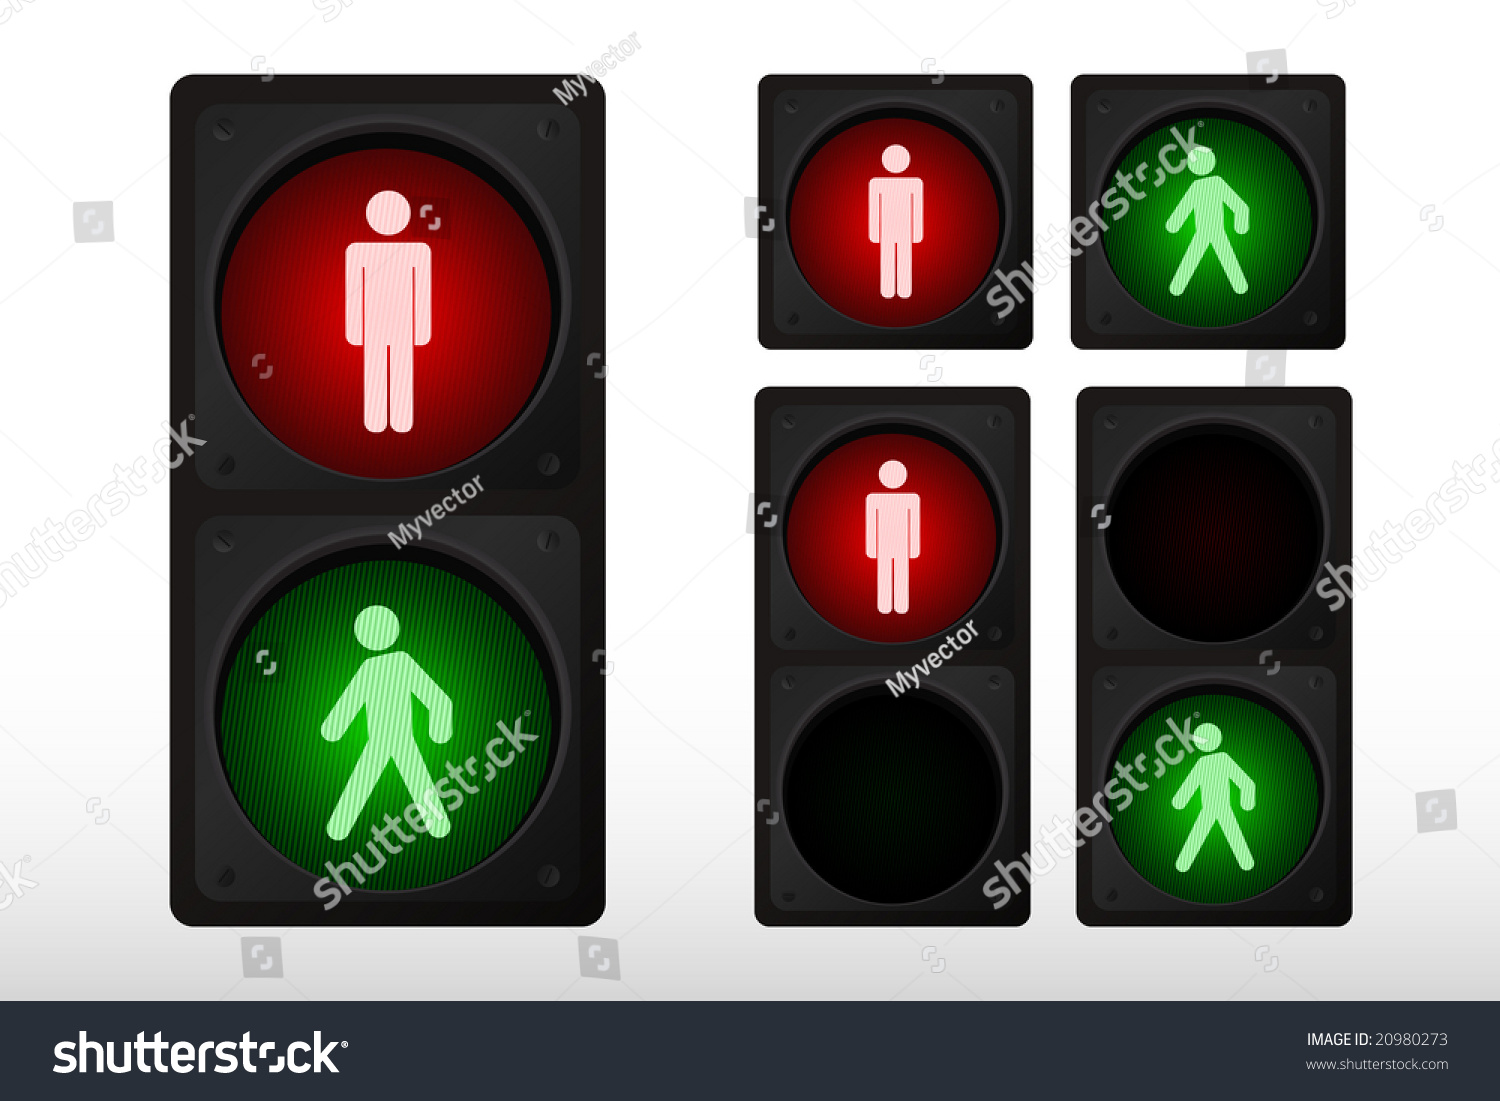 Illustration Pedestrian Traffic Light Stock Vector ...